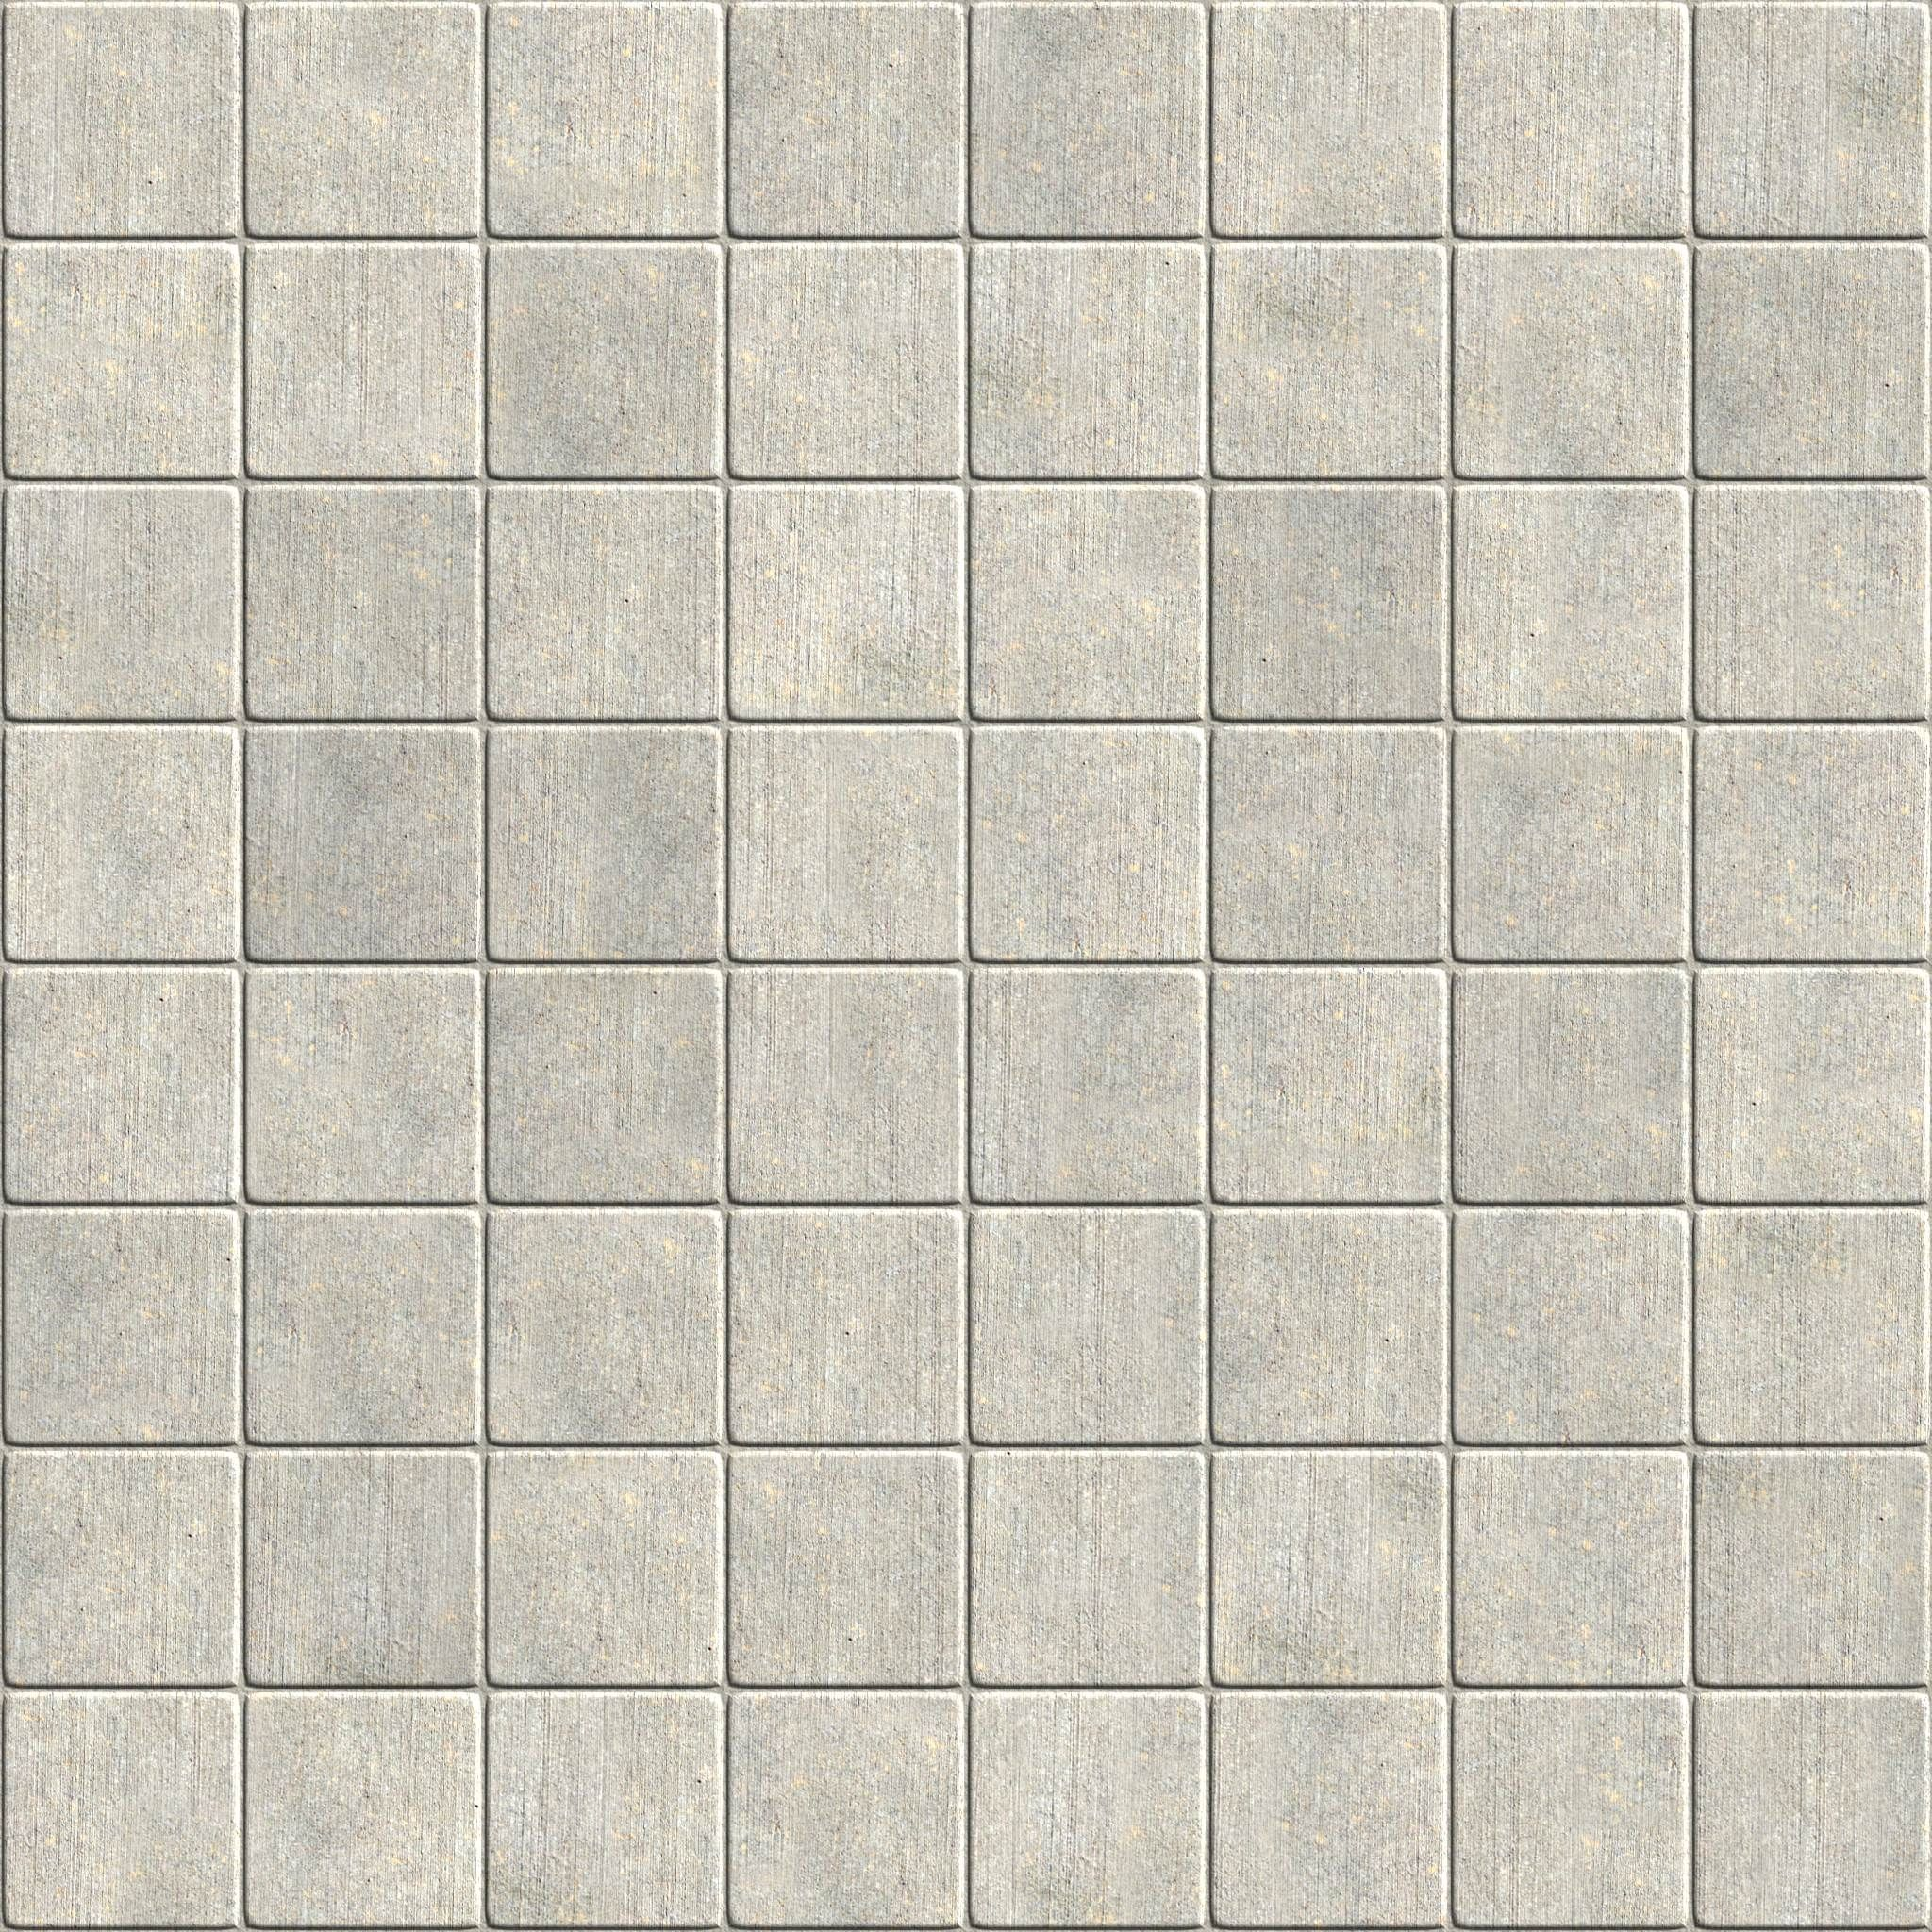 Find this pin and more on lib texture latest posts under bathroom wall tile